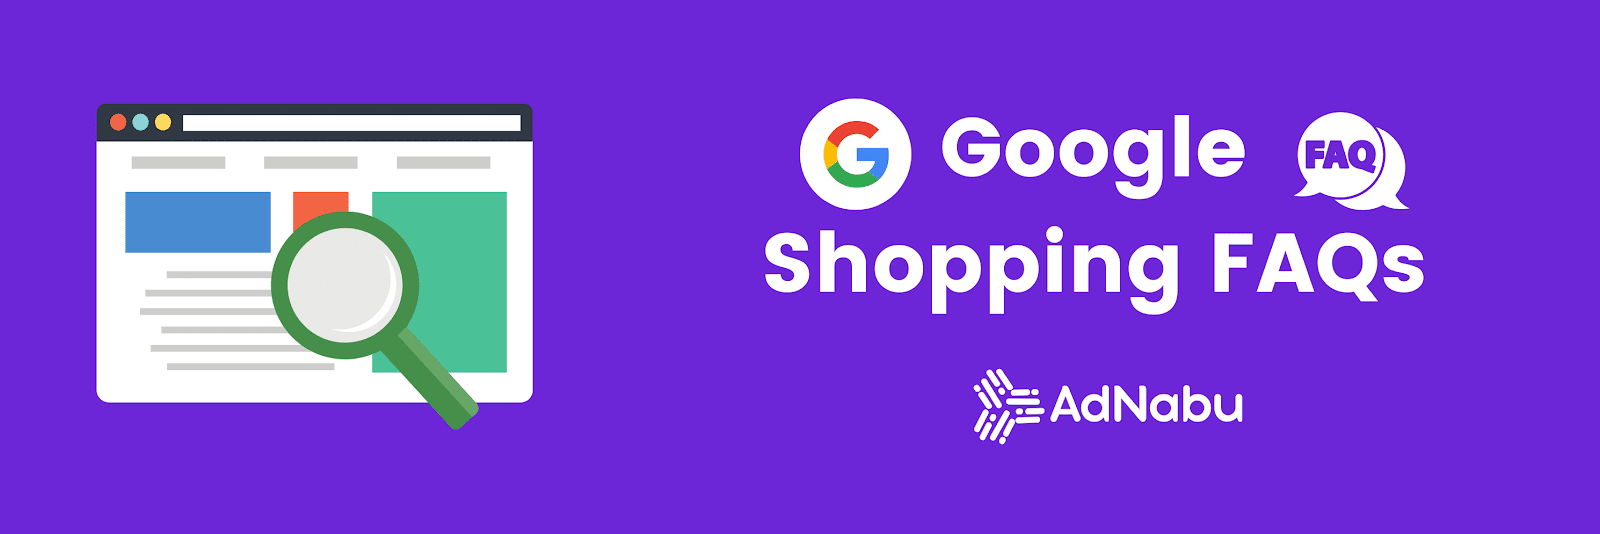 Google Shopping FAQ